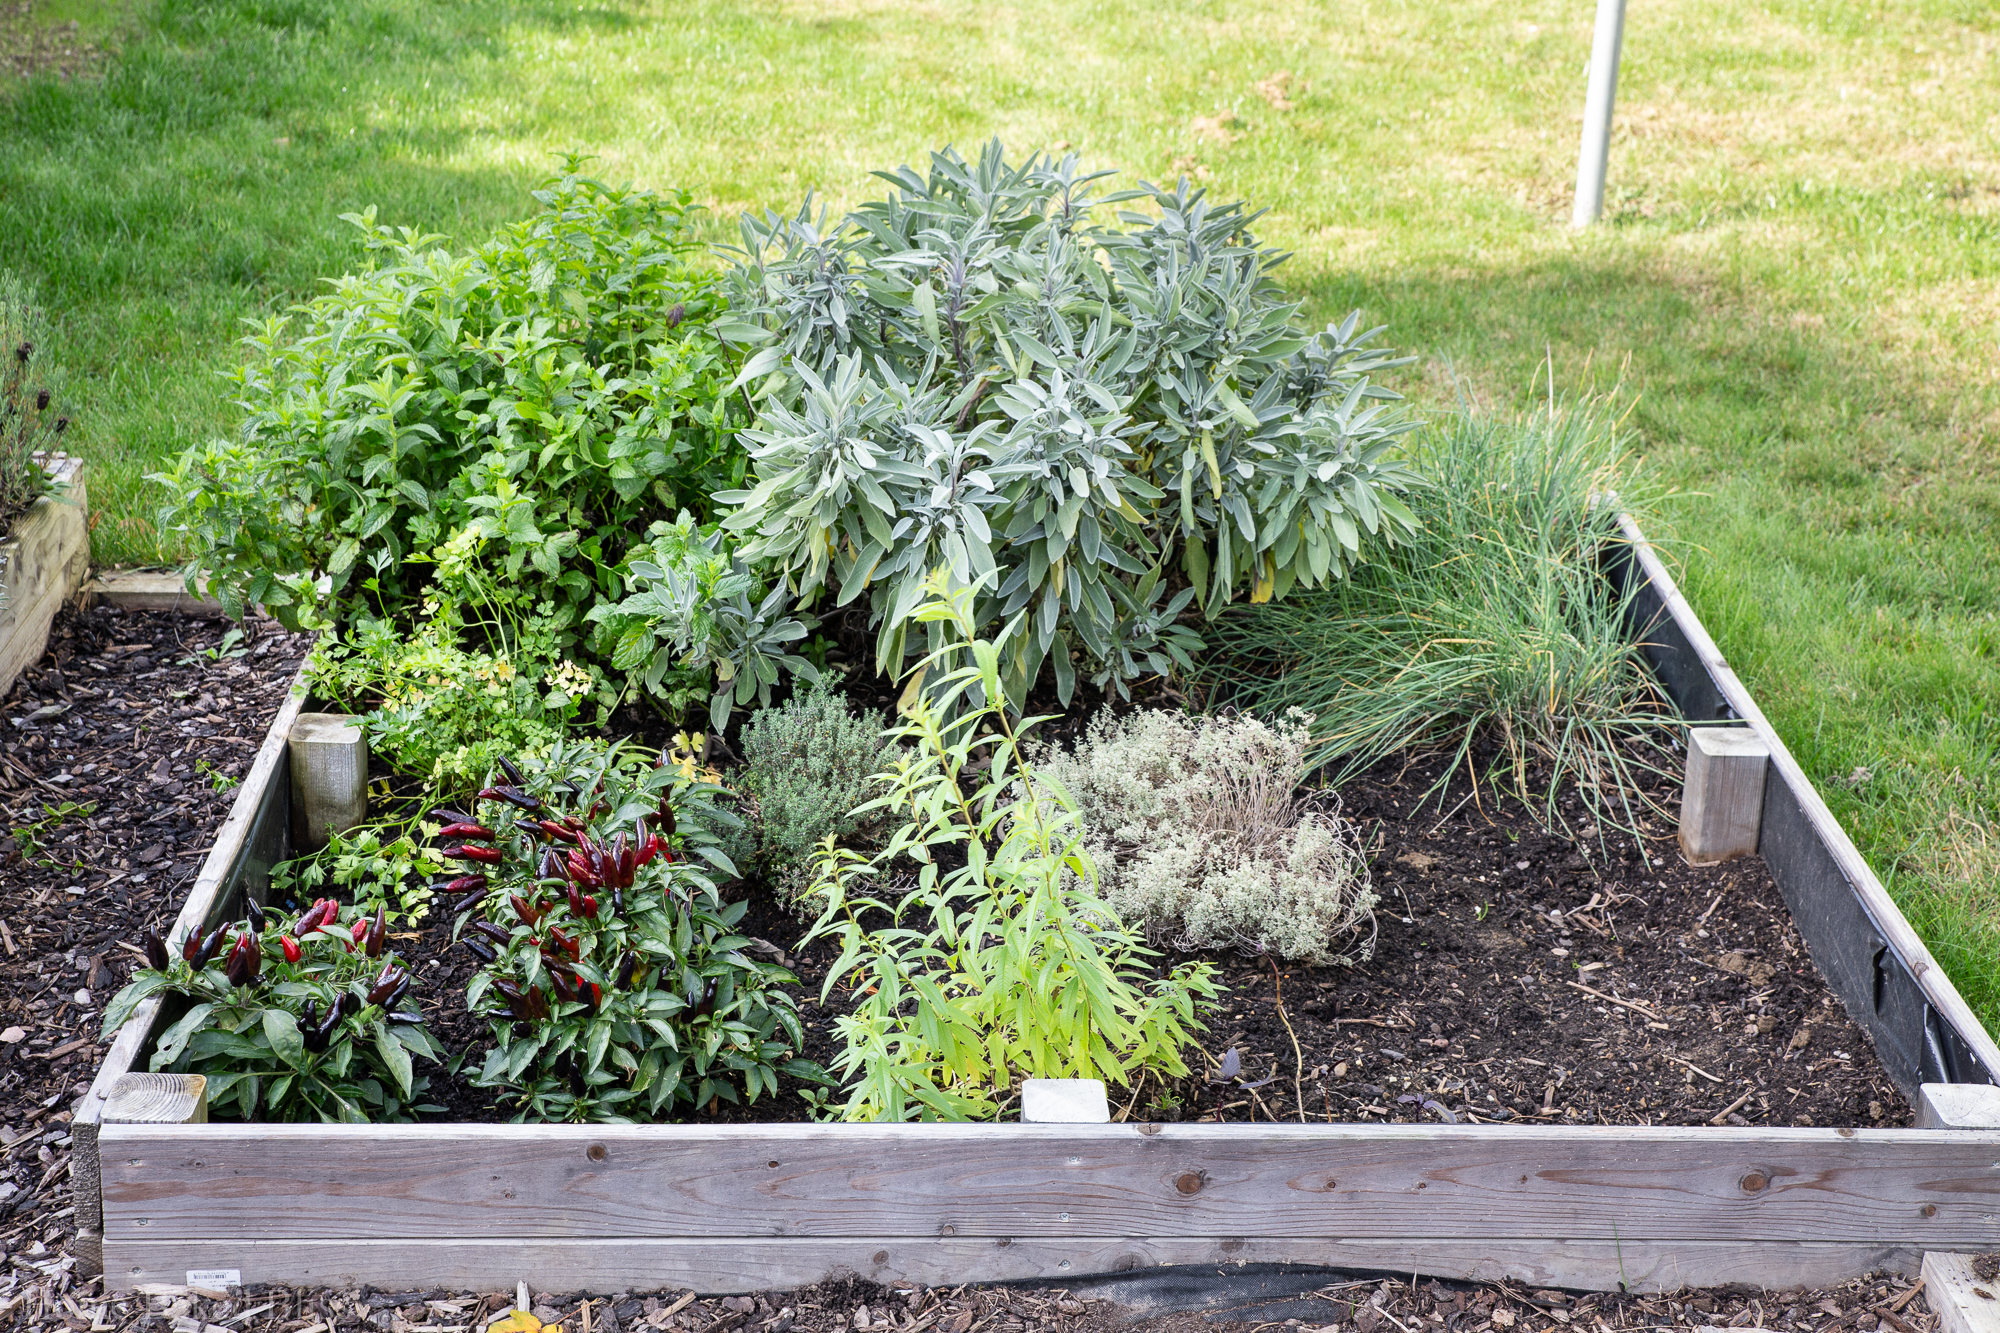 Overview of herb bed